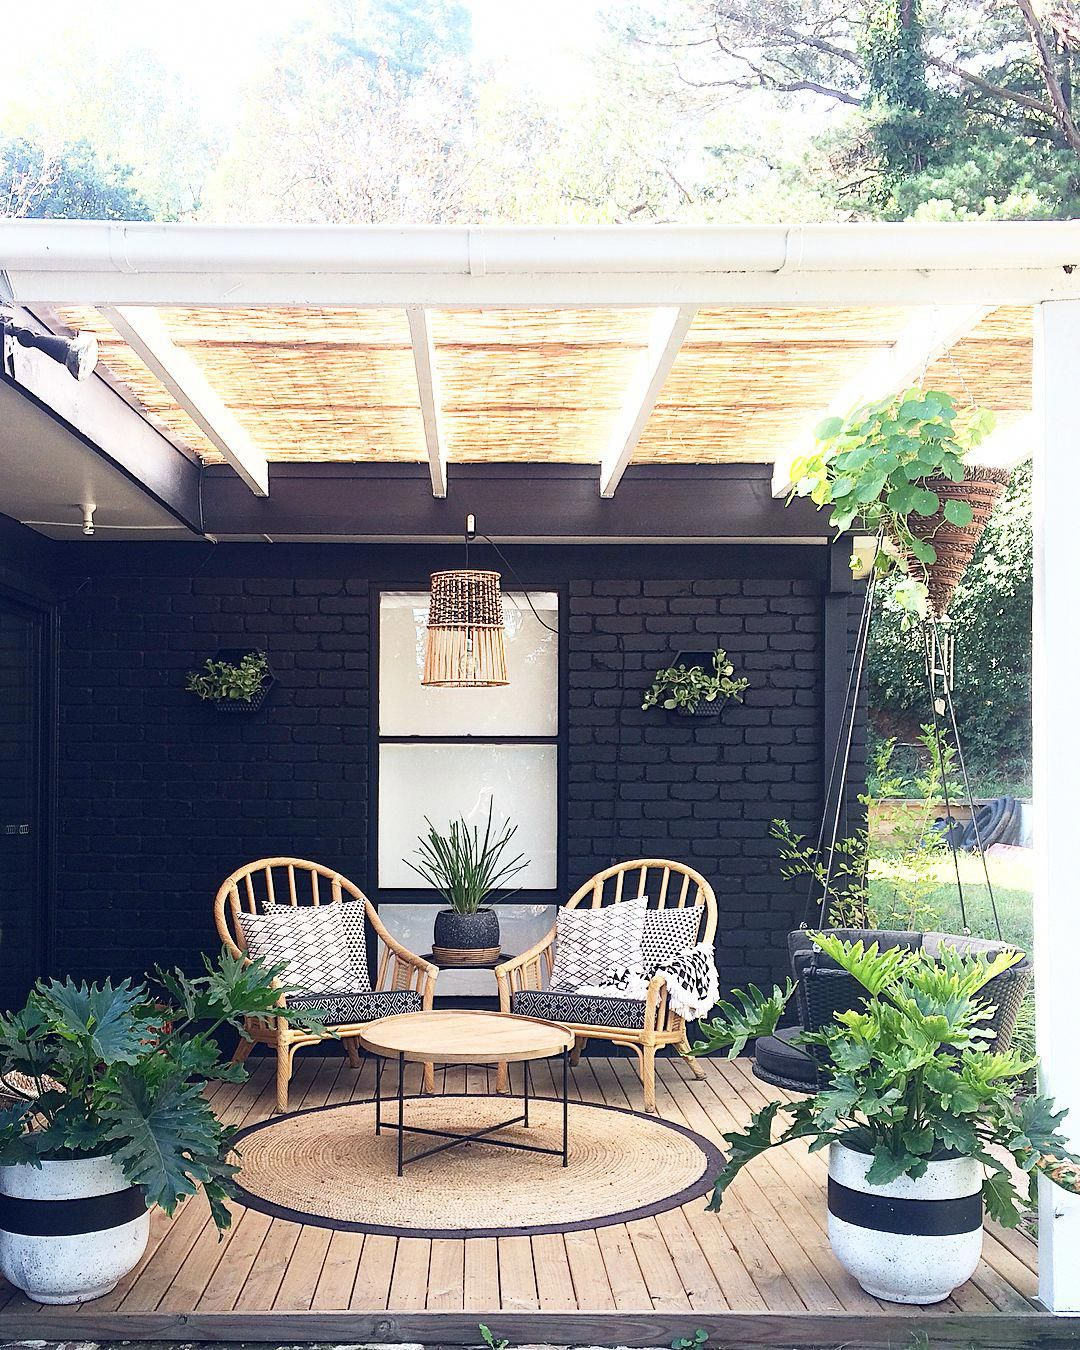 Pergola Attached To House Plans #PergolaInBackyard # ... on Attached Outdoor Living Spaces id=41497